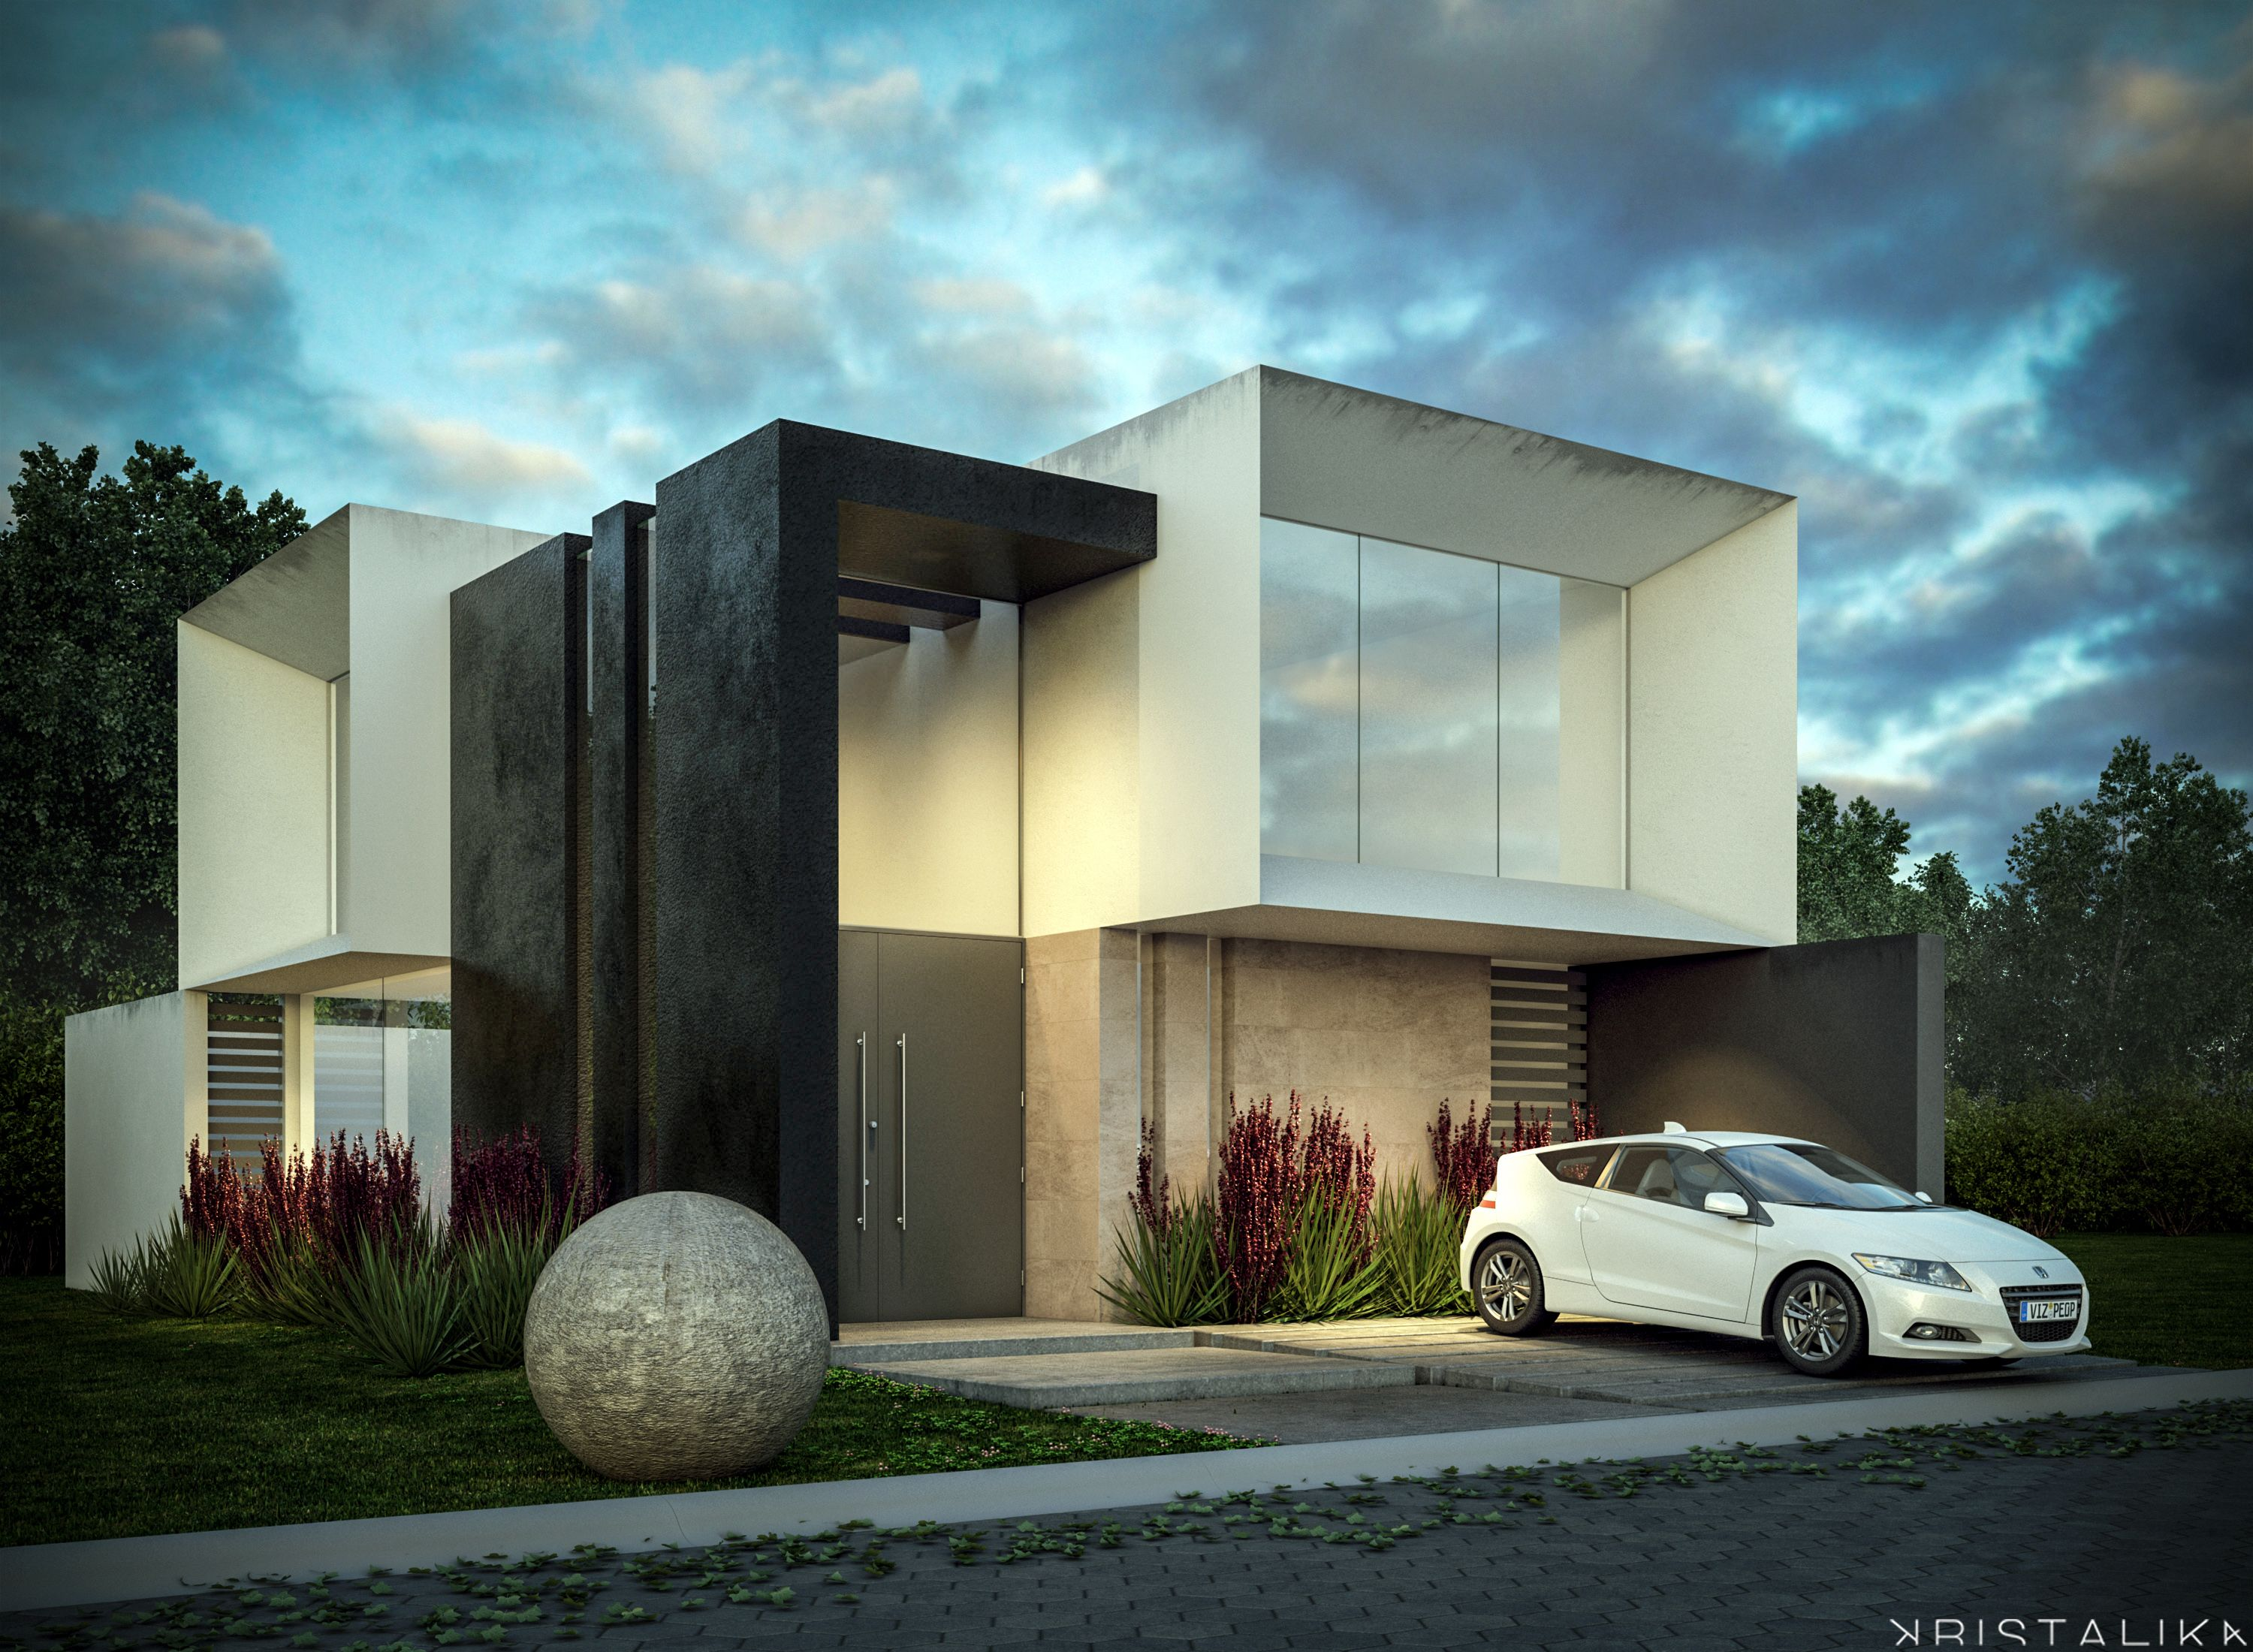 Just love this, totally my style when it comes to modern | Bunglows ...